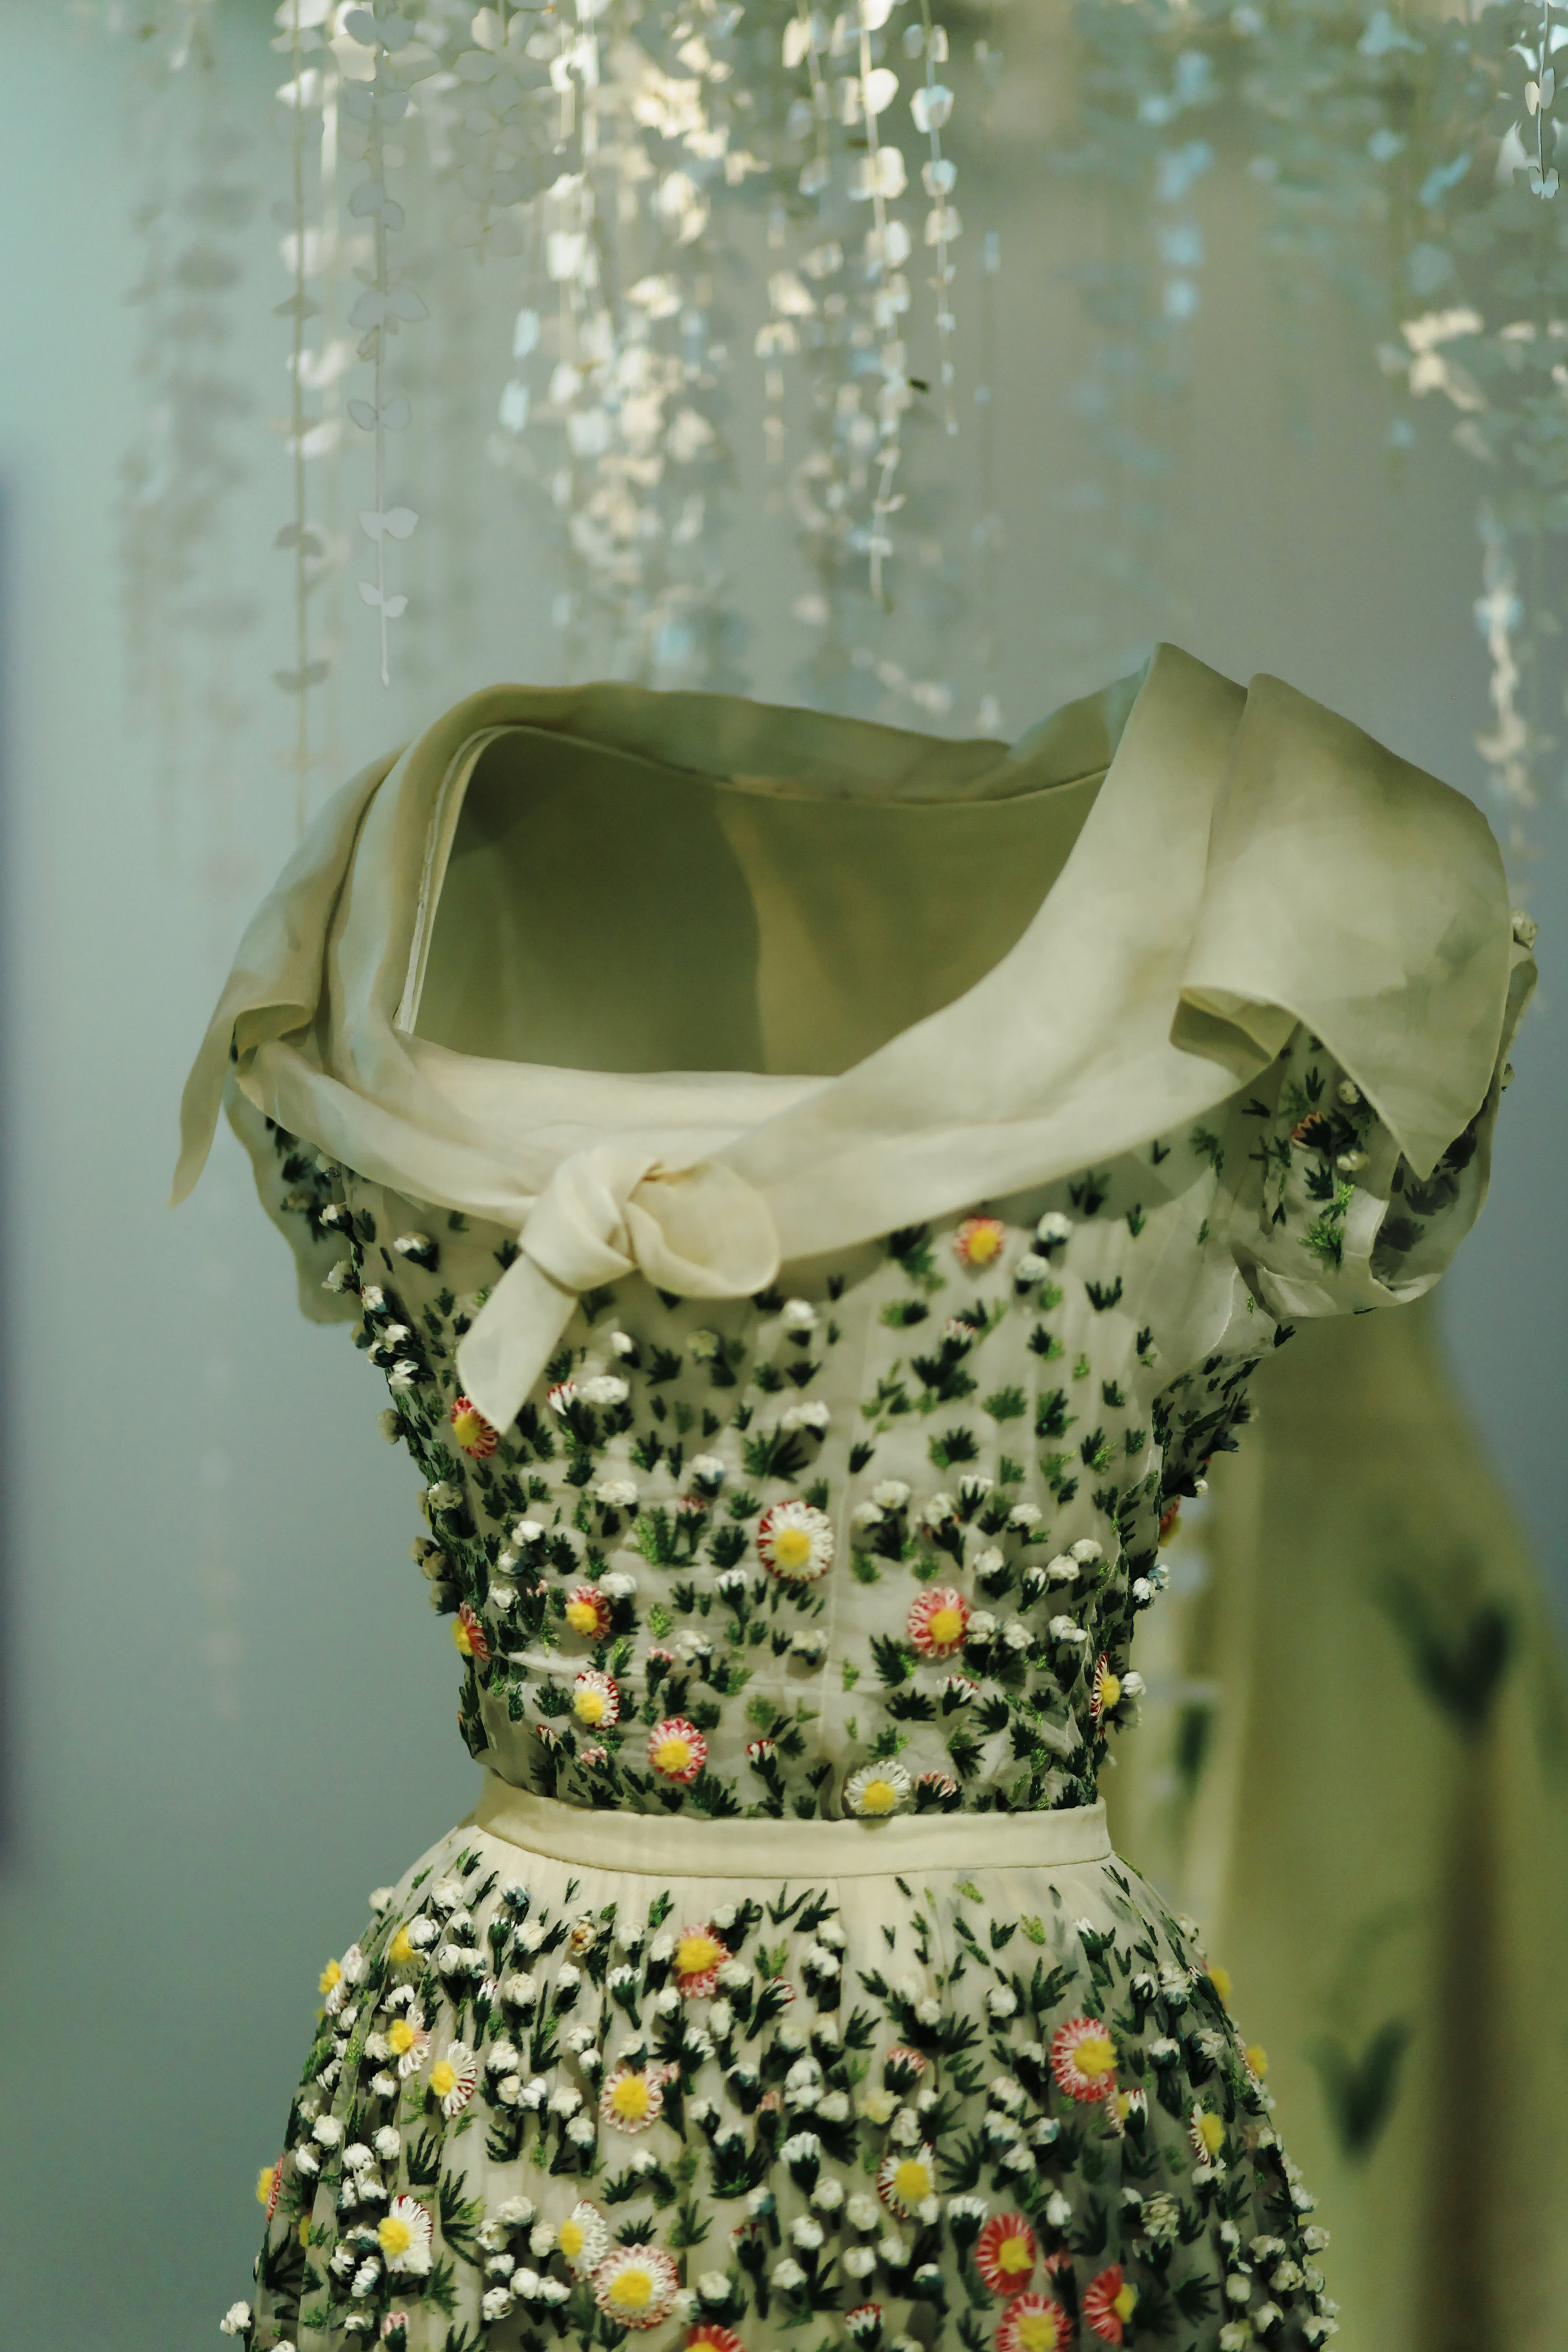 PARIS Robe Christian dior musee arts décoratifs exposition